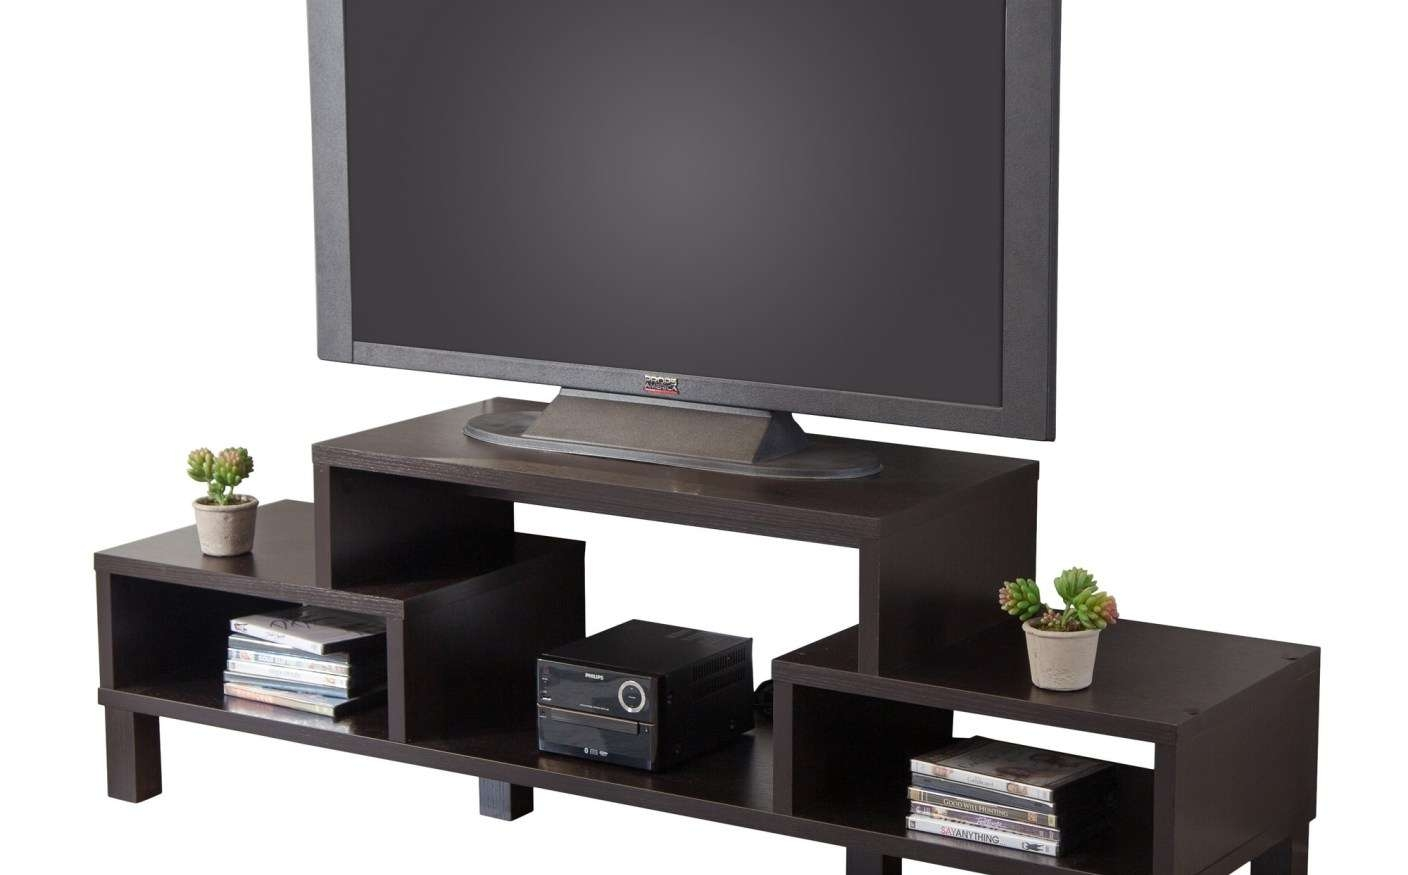 Tv : Ovid Tv Stands Black Terrifying Techlink Ovid Tv Stand Black Pertaining To Ovid Tv Stands Black (View 18 of 20)